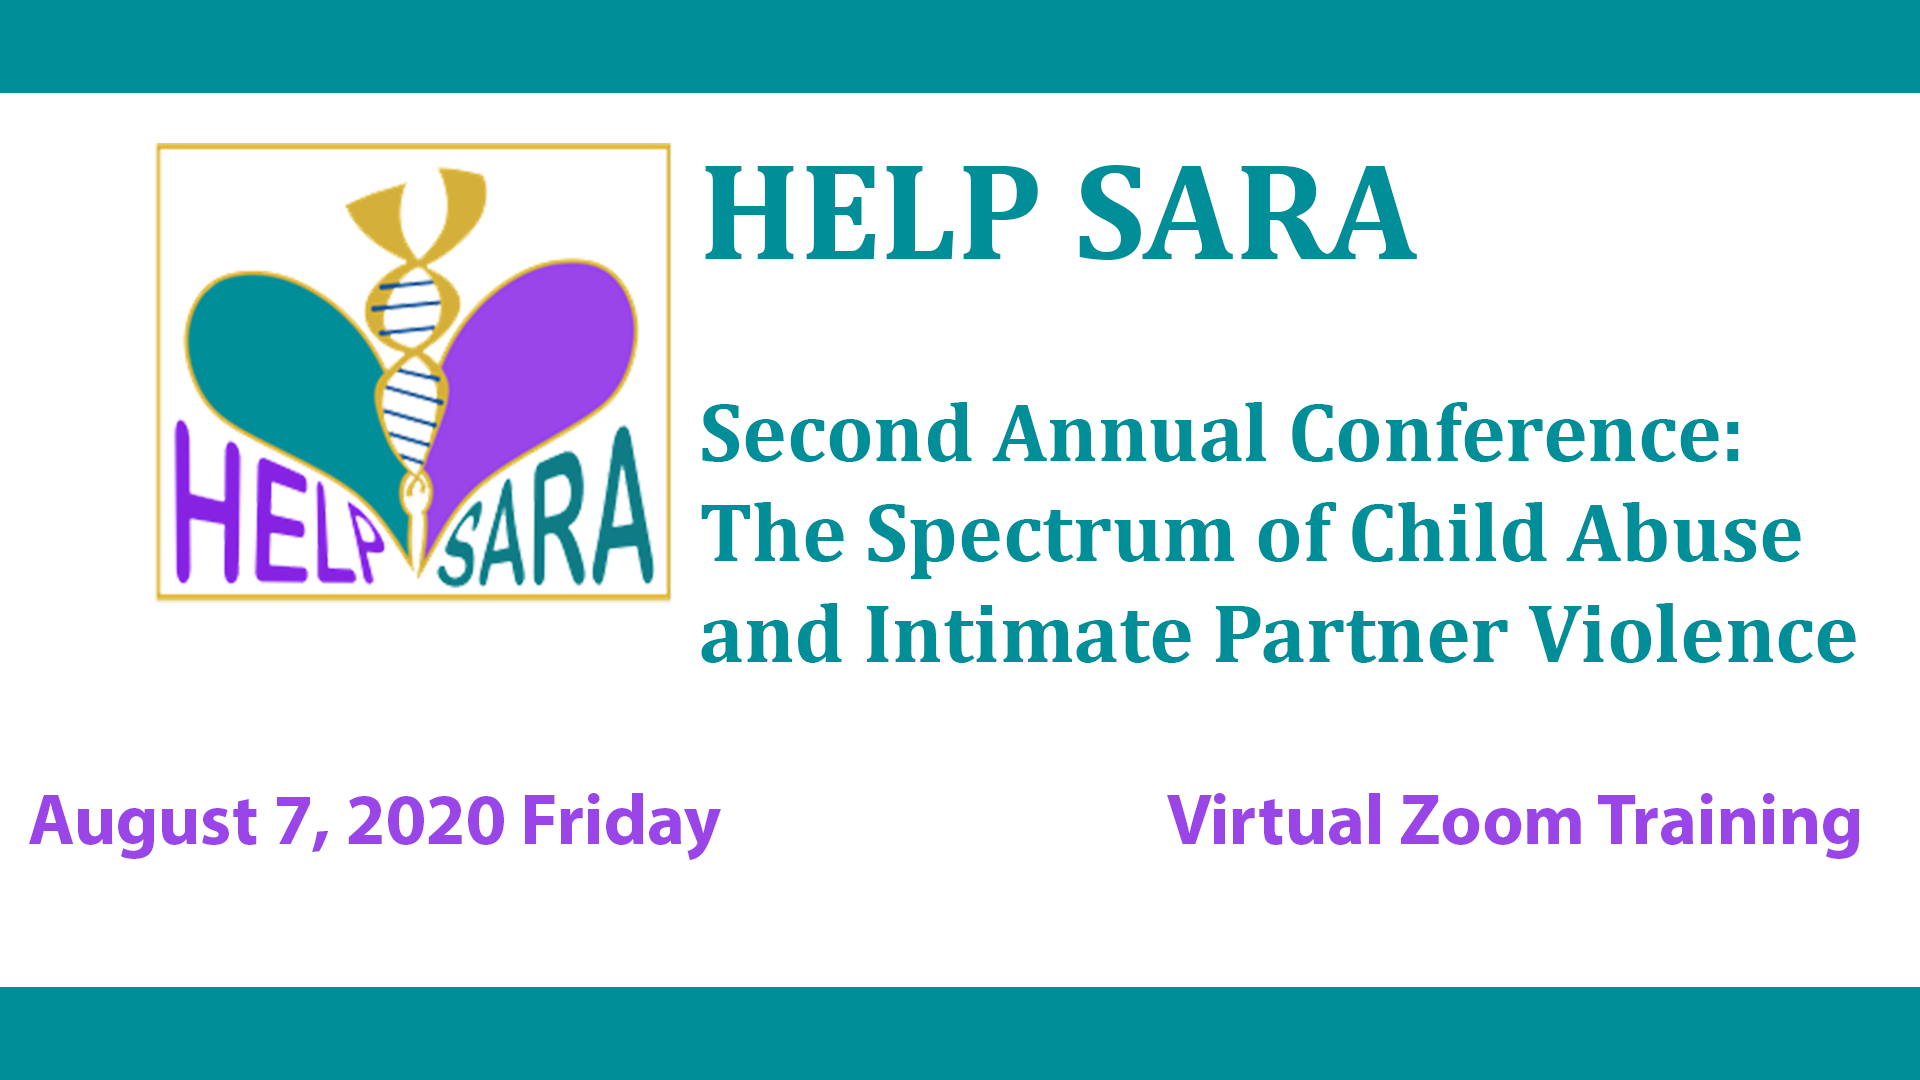 decorative image for HELP SARA Second Annual Conference